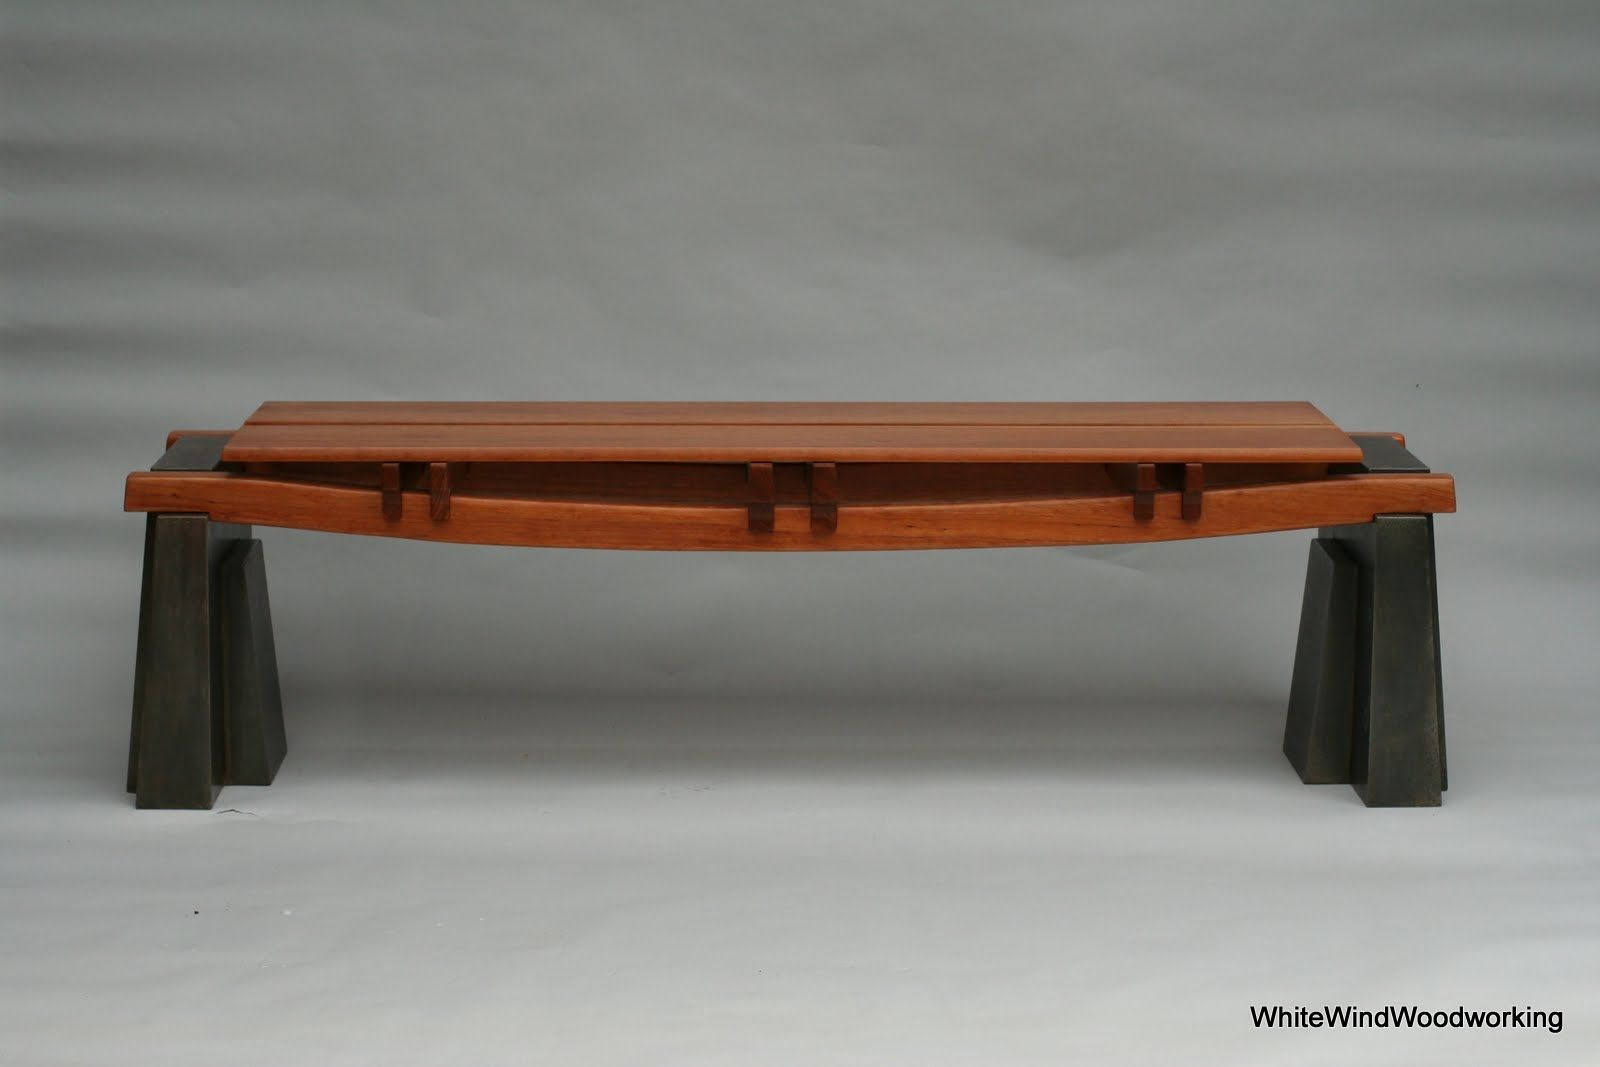 Custom Made Austin Cherry Bench With Steel Leg Available: $3300.00